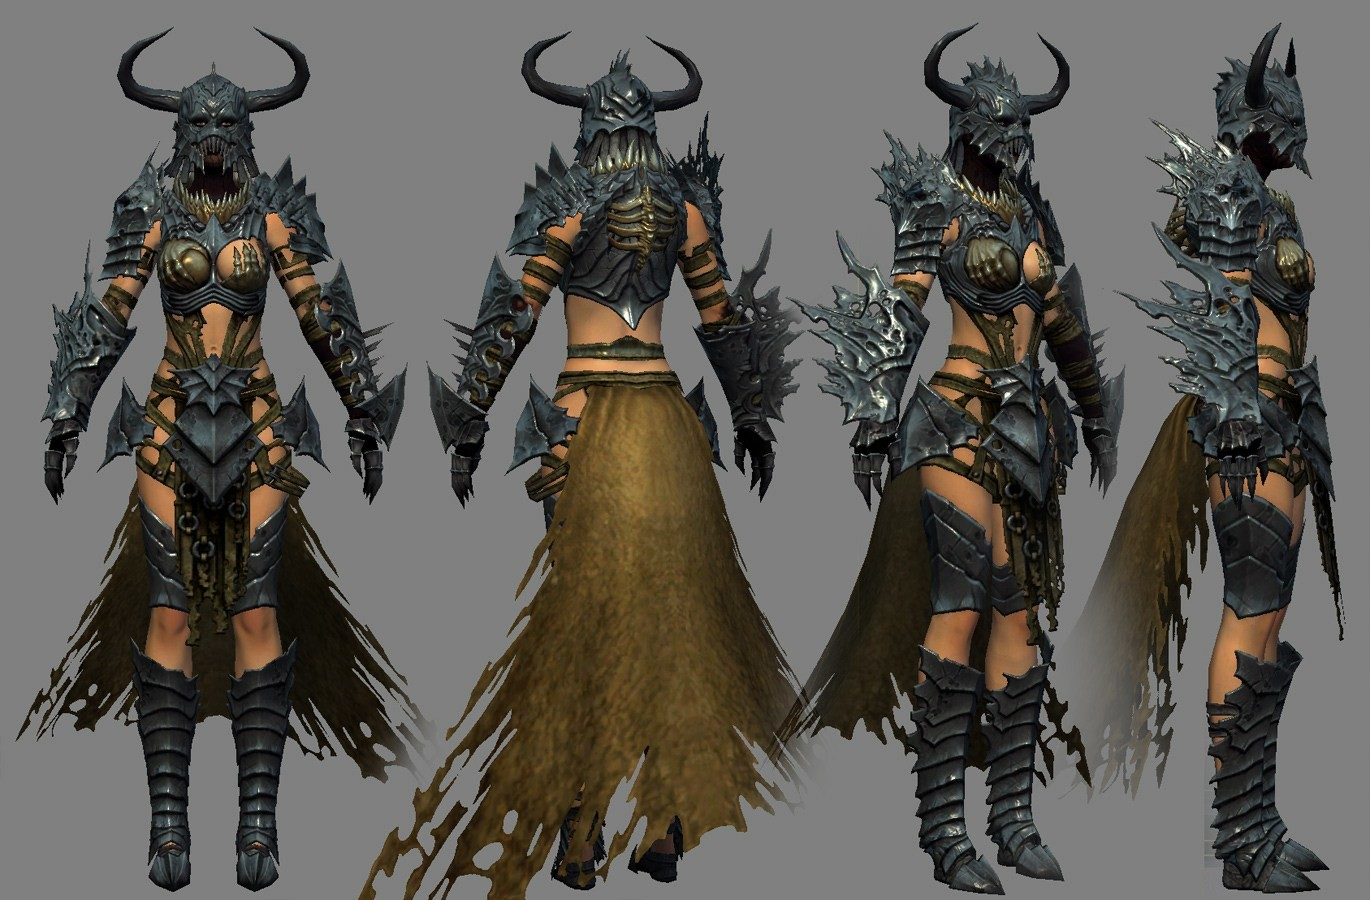 T d chiu customizationarmor humancult02orrianfemale